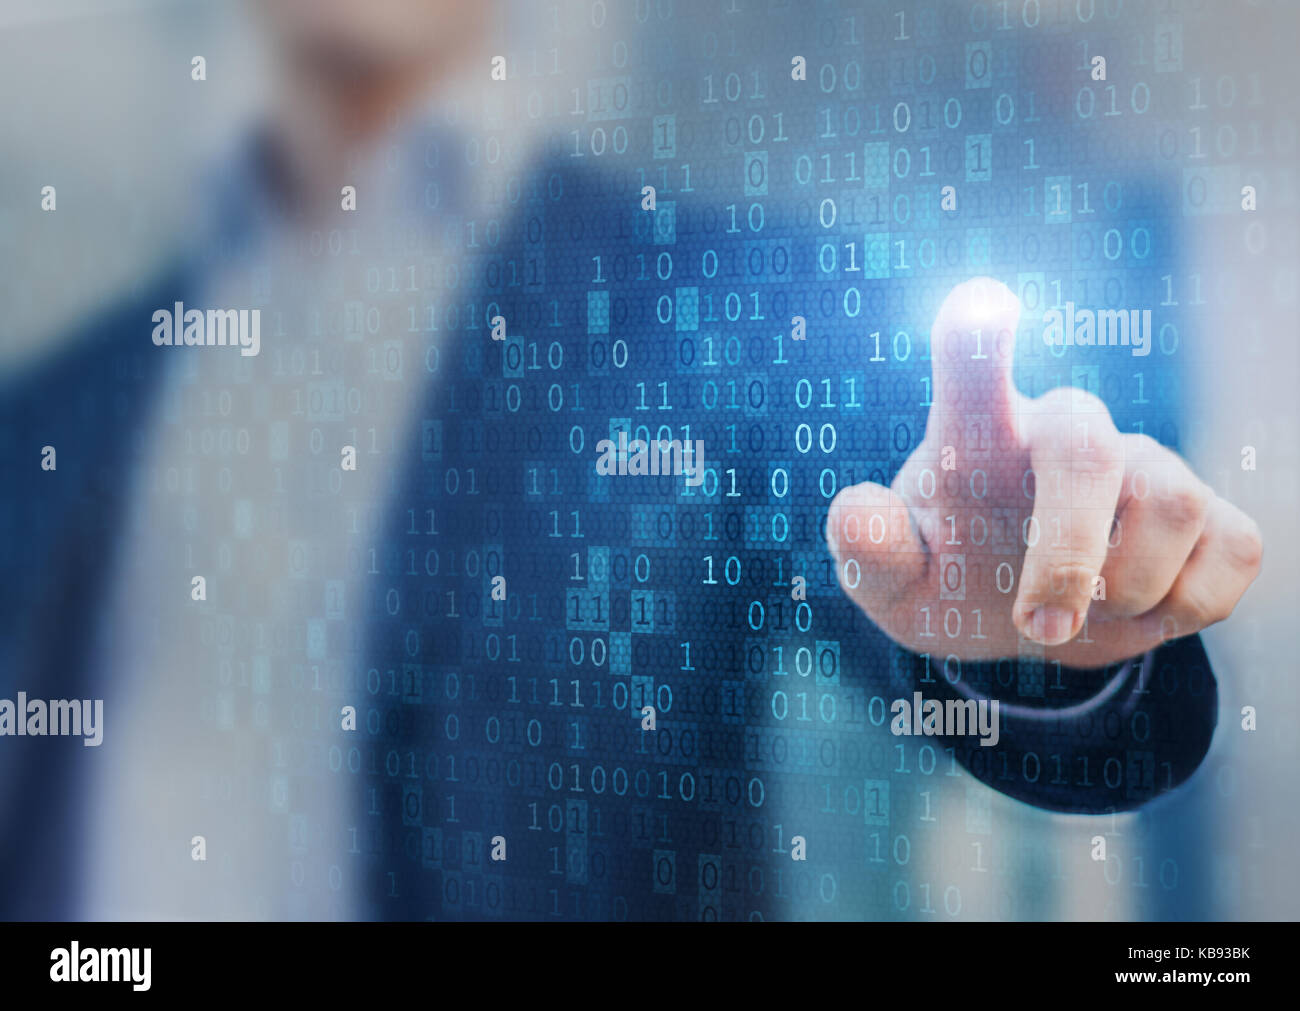 Big data statistics and business analytics concept with flow or stream of binary code information on virtual screen - Stock Image